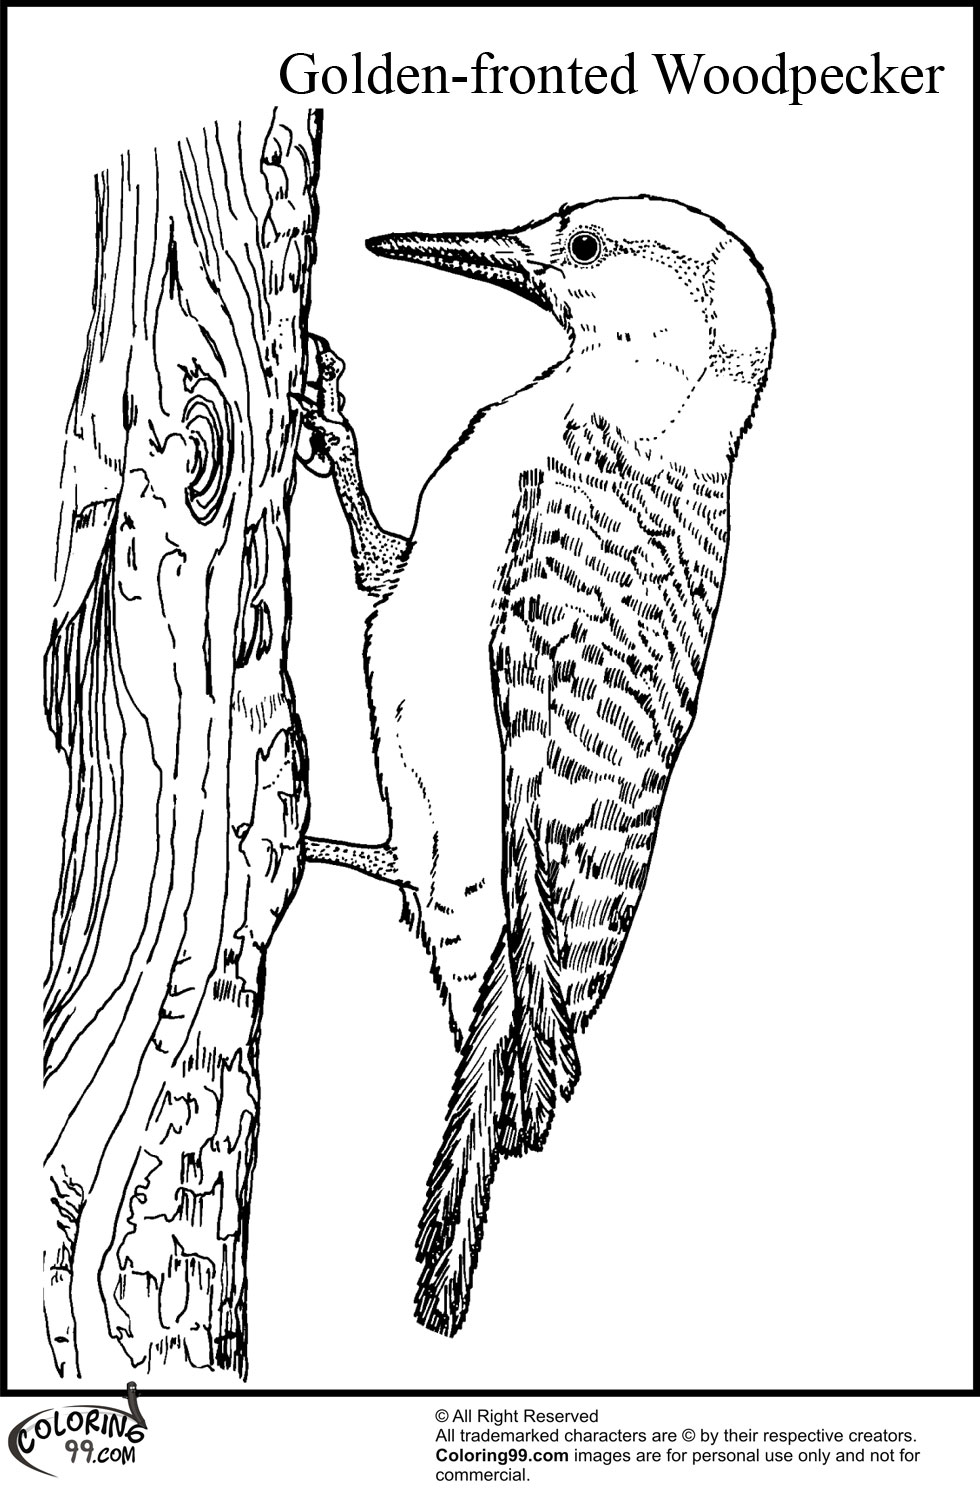 woodpecker coloring pages team colors. Black Bedroom Furniture Sets. Home Design Ideas